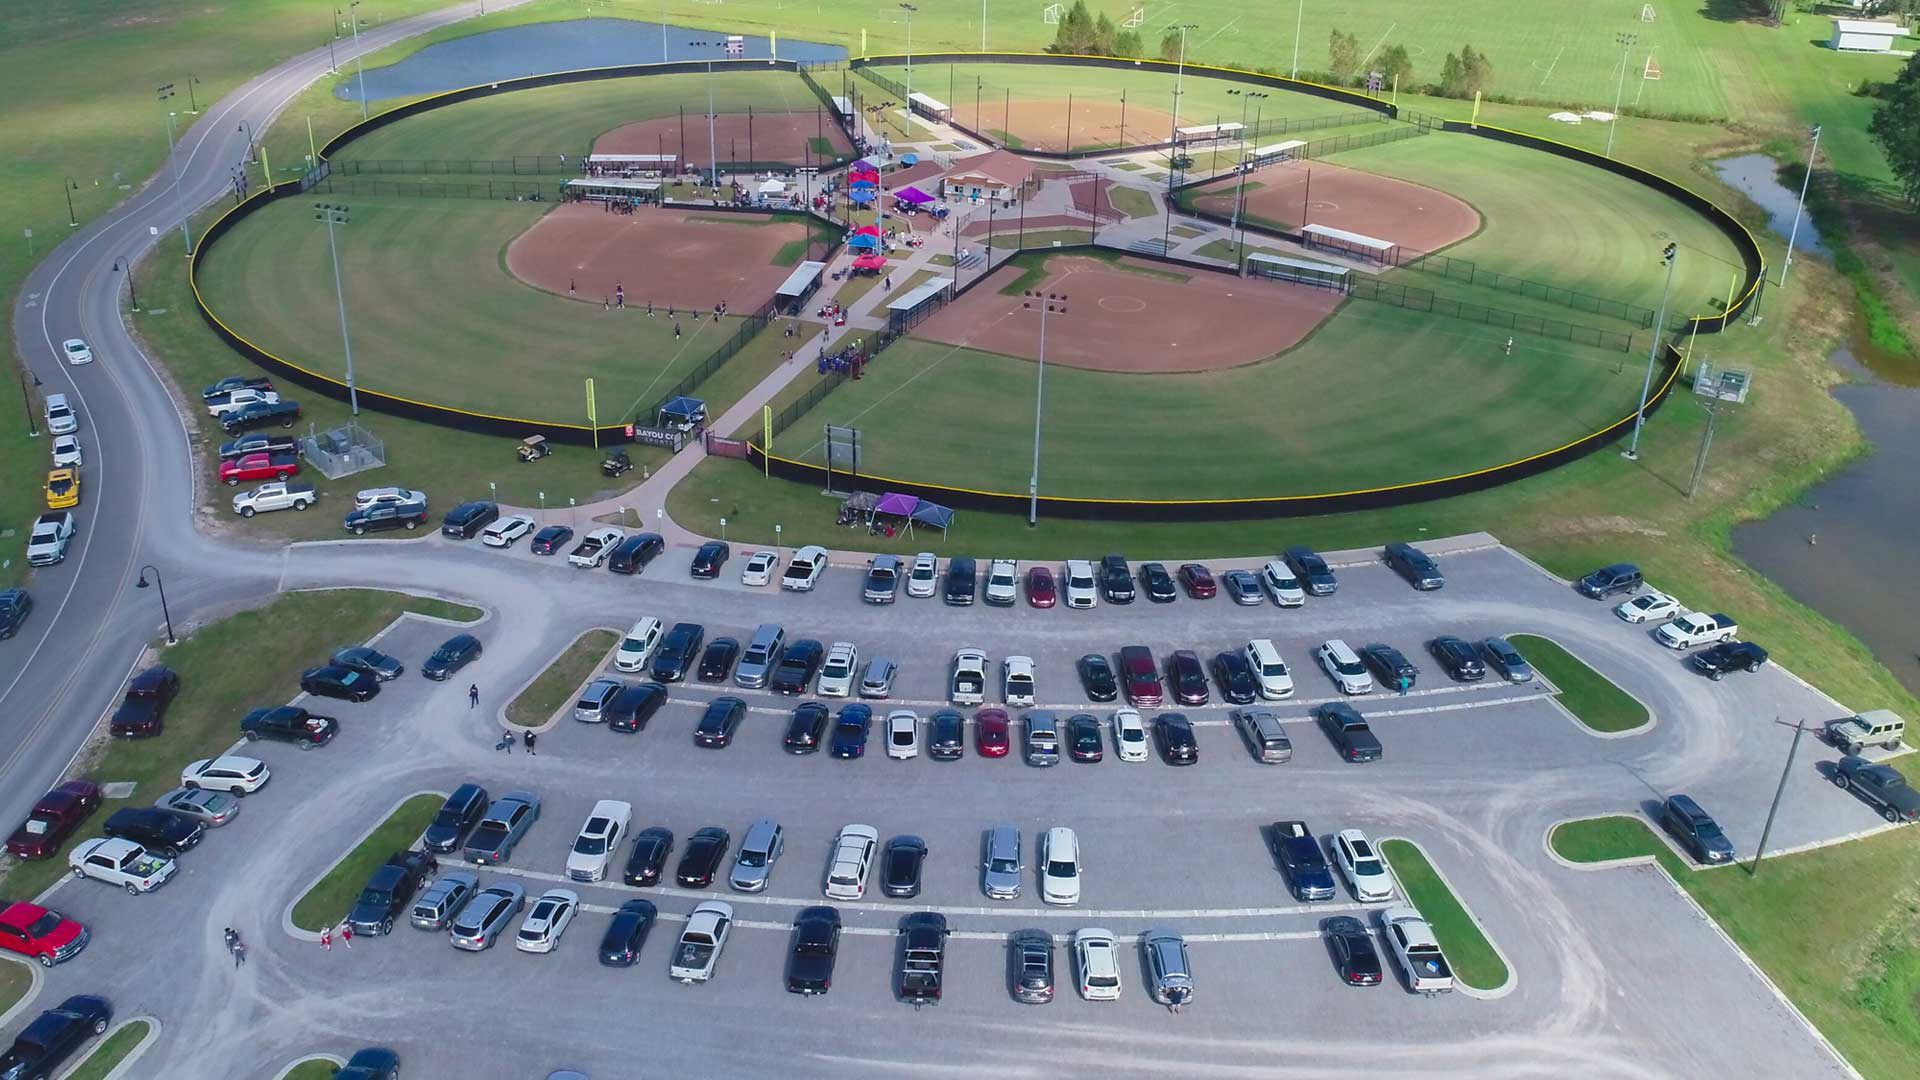 Photo of softball complex and parking lot.